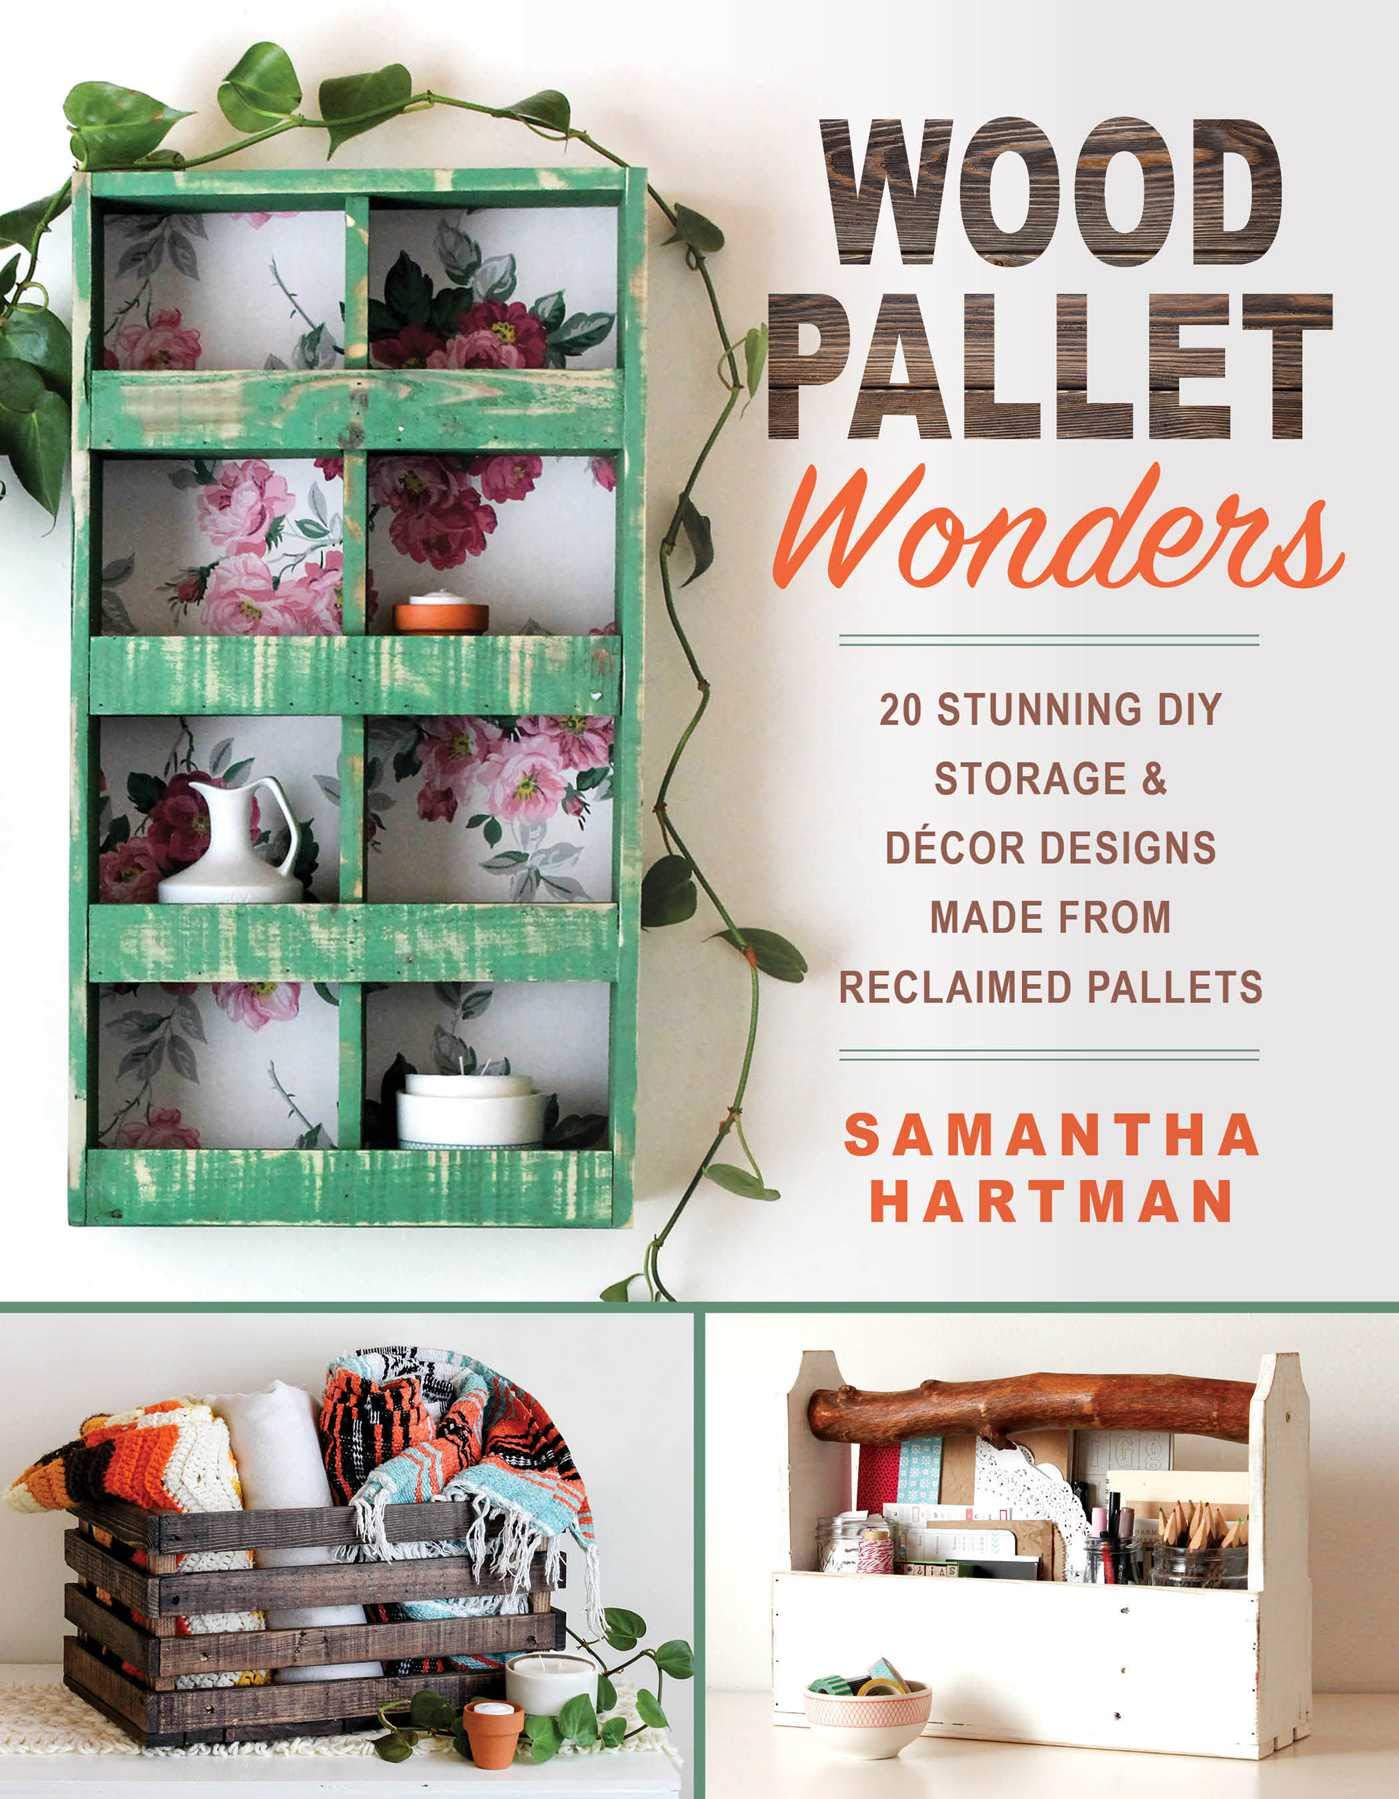 Wood Pallet Wonders 20 Stunning Diy Storage Decor Designs